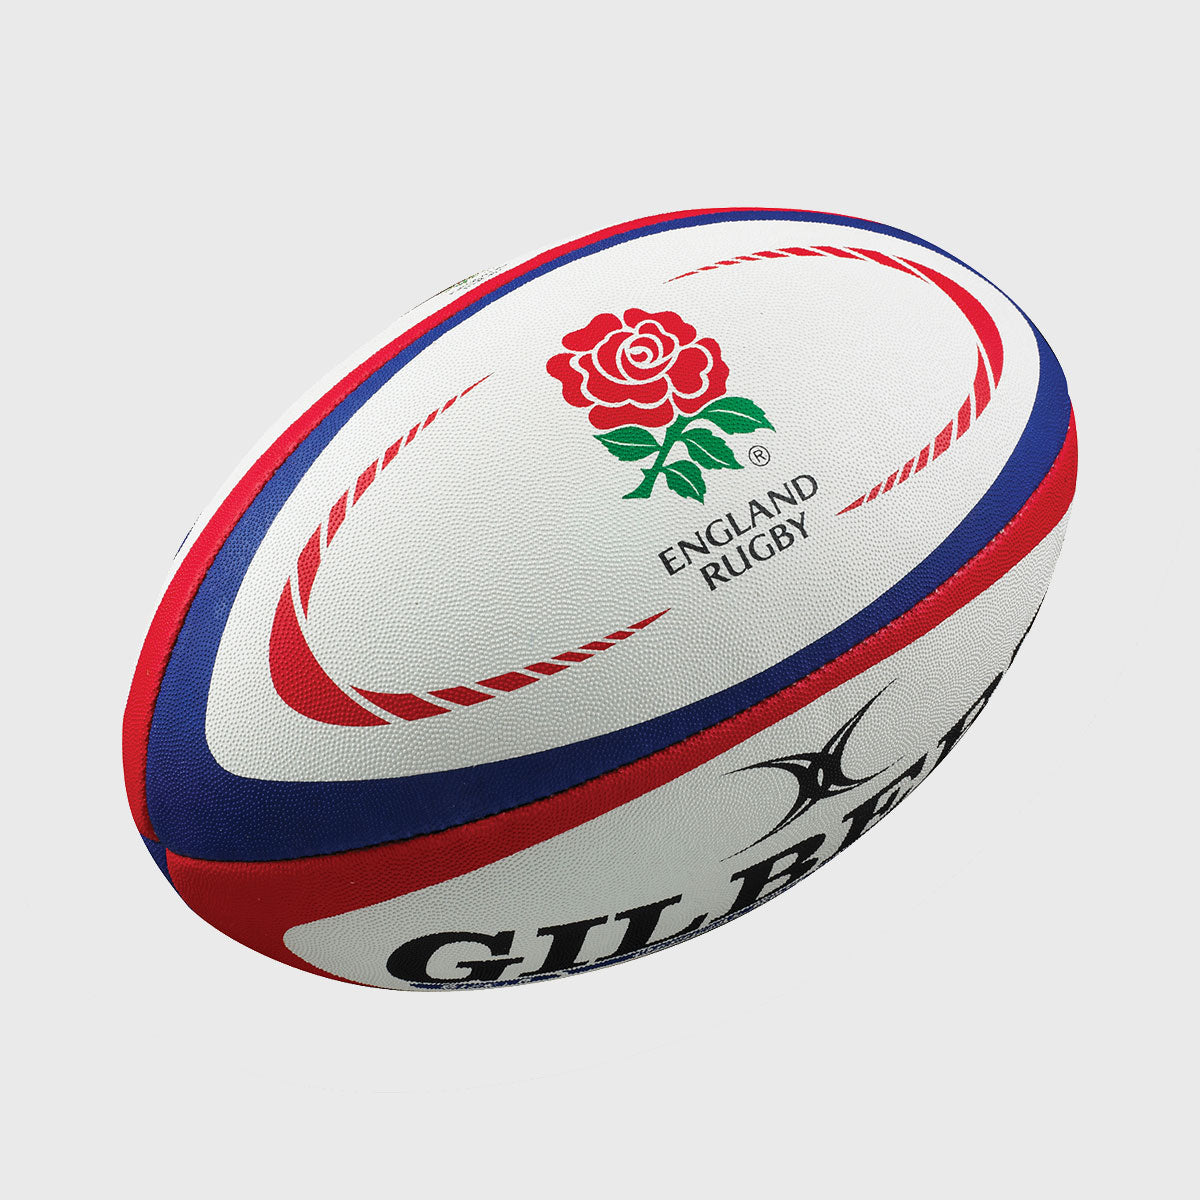 England Replica Midi Rugby Ball